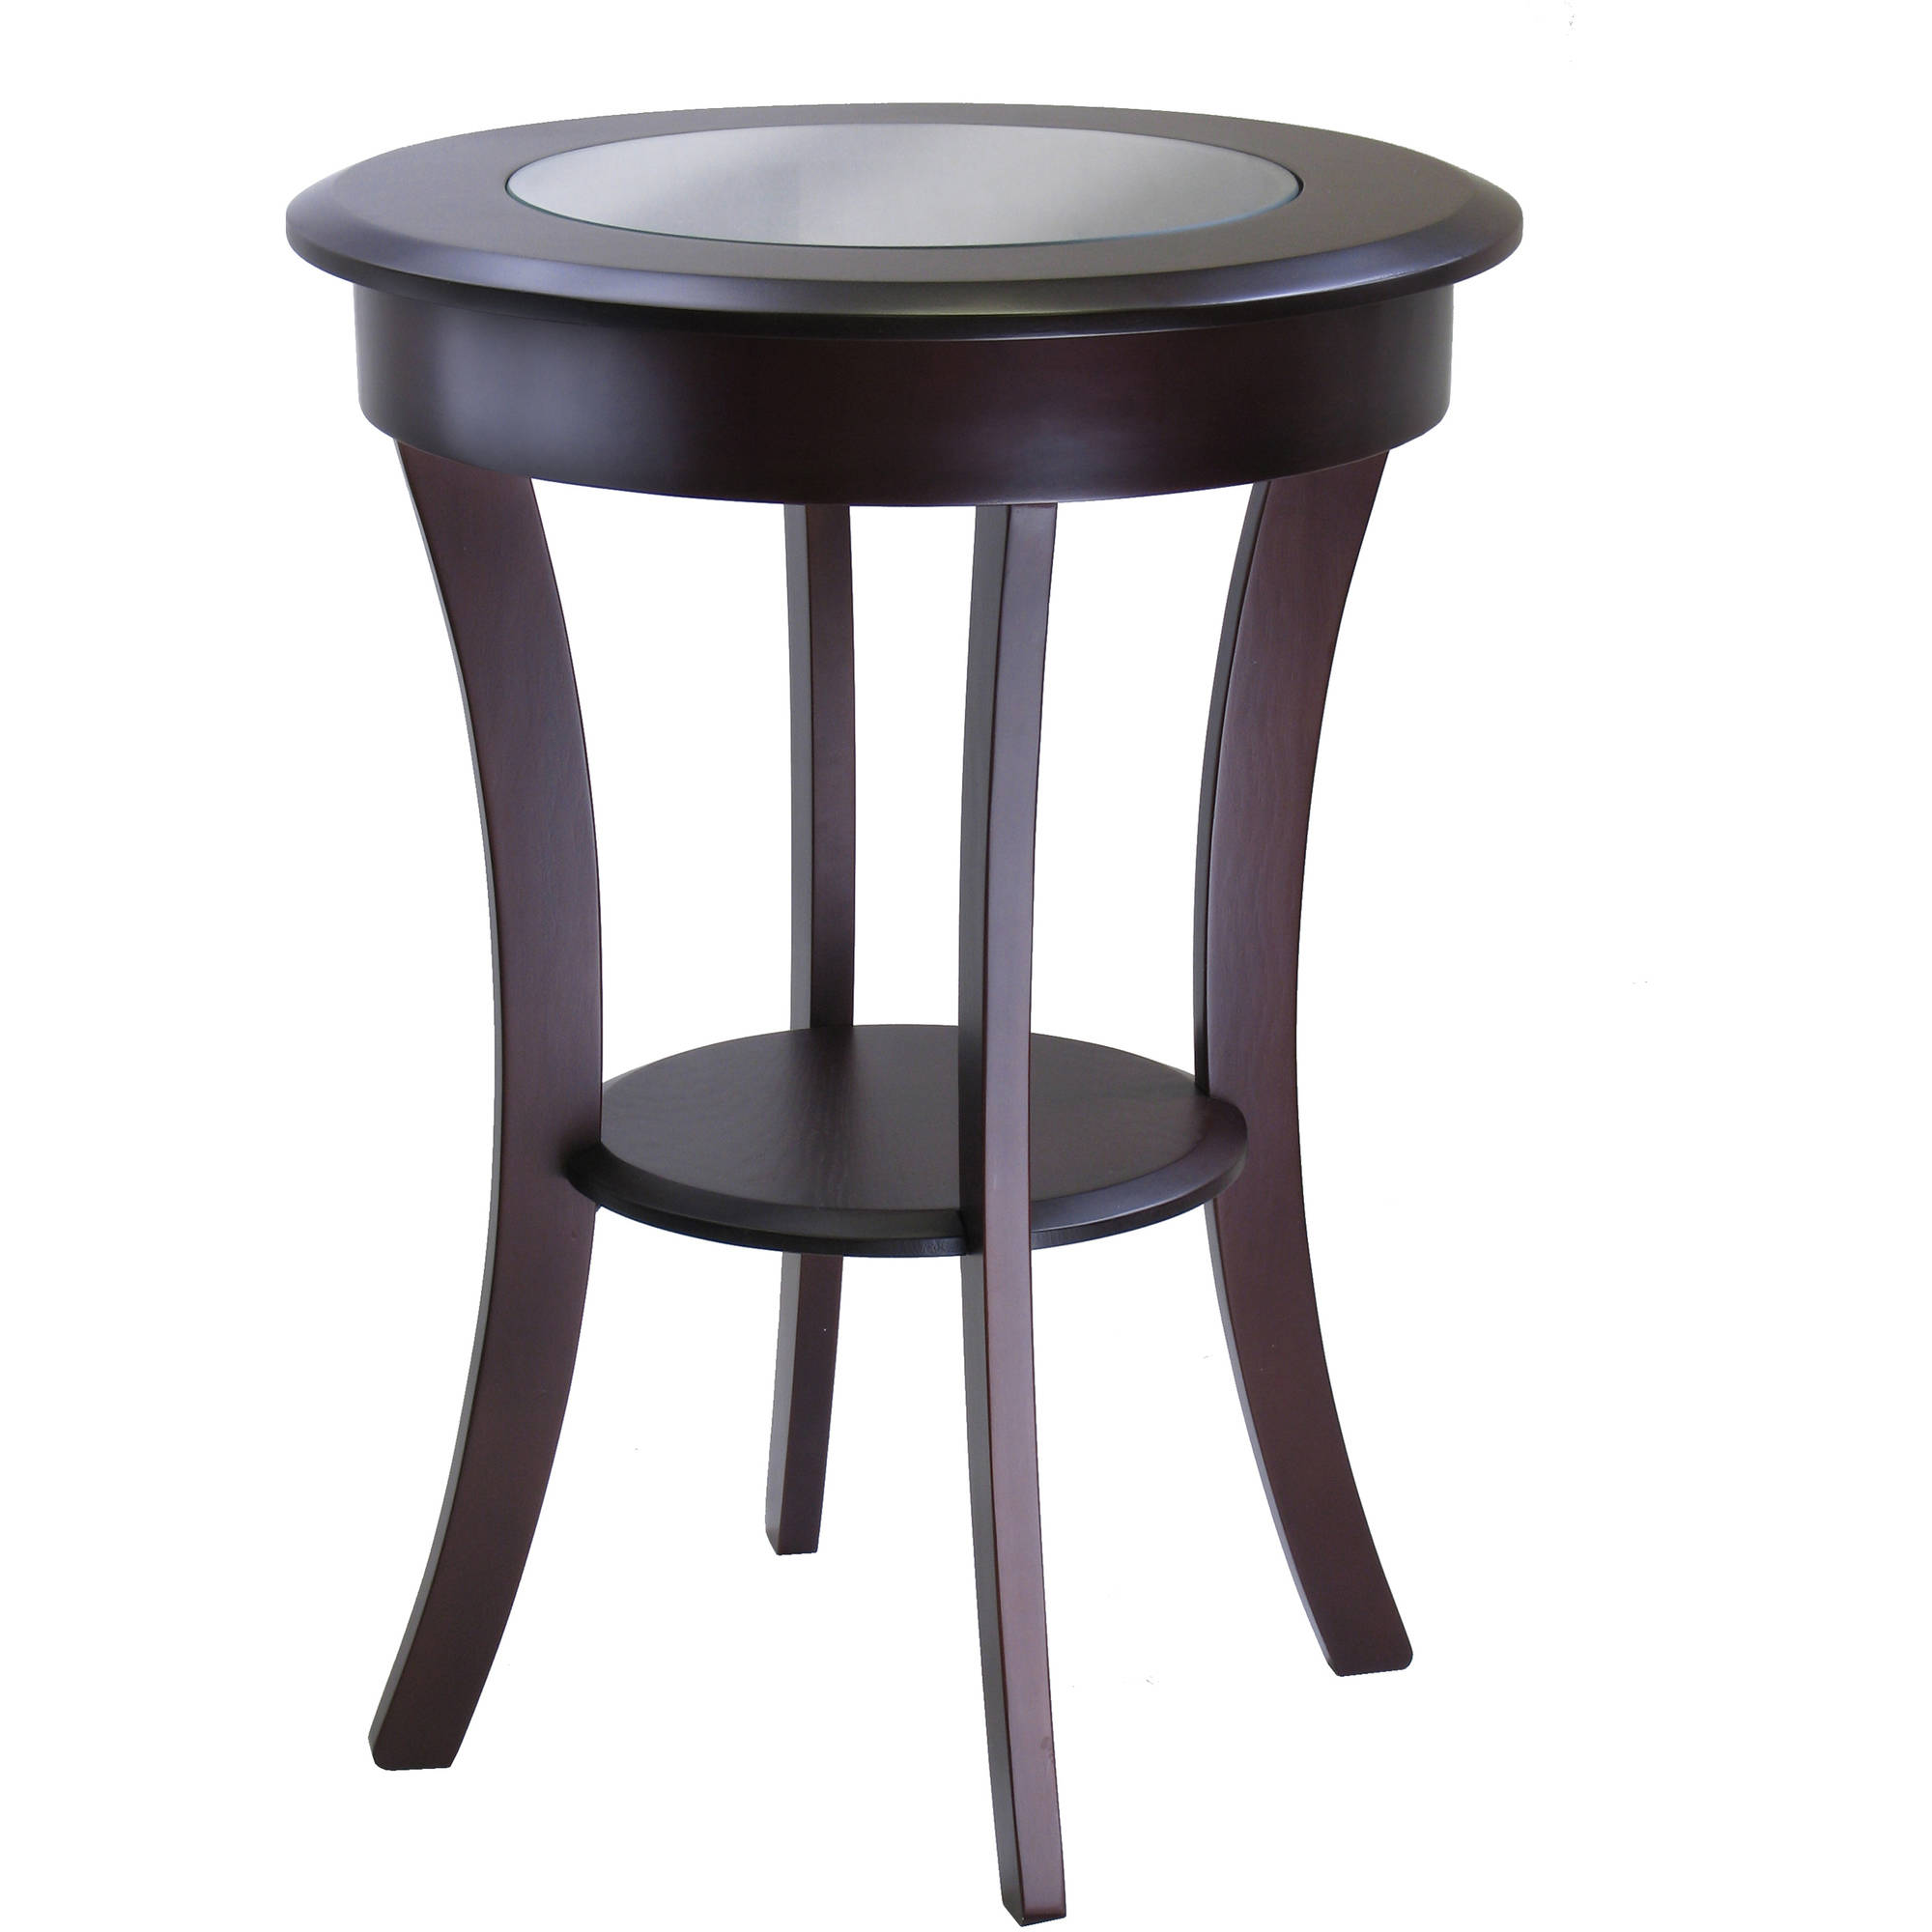 and wood gold tables side small outdoor rustic accent nest round metal for bedroom gloss mater wooden glass table kmart bedside full size coffee decorative accents ideas windham